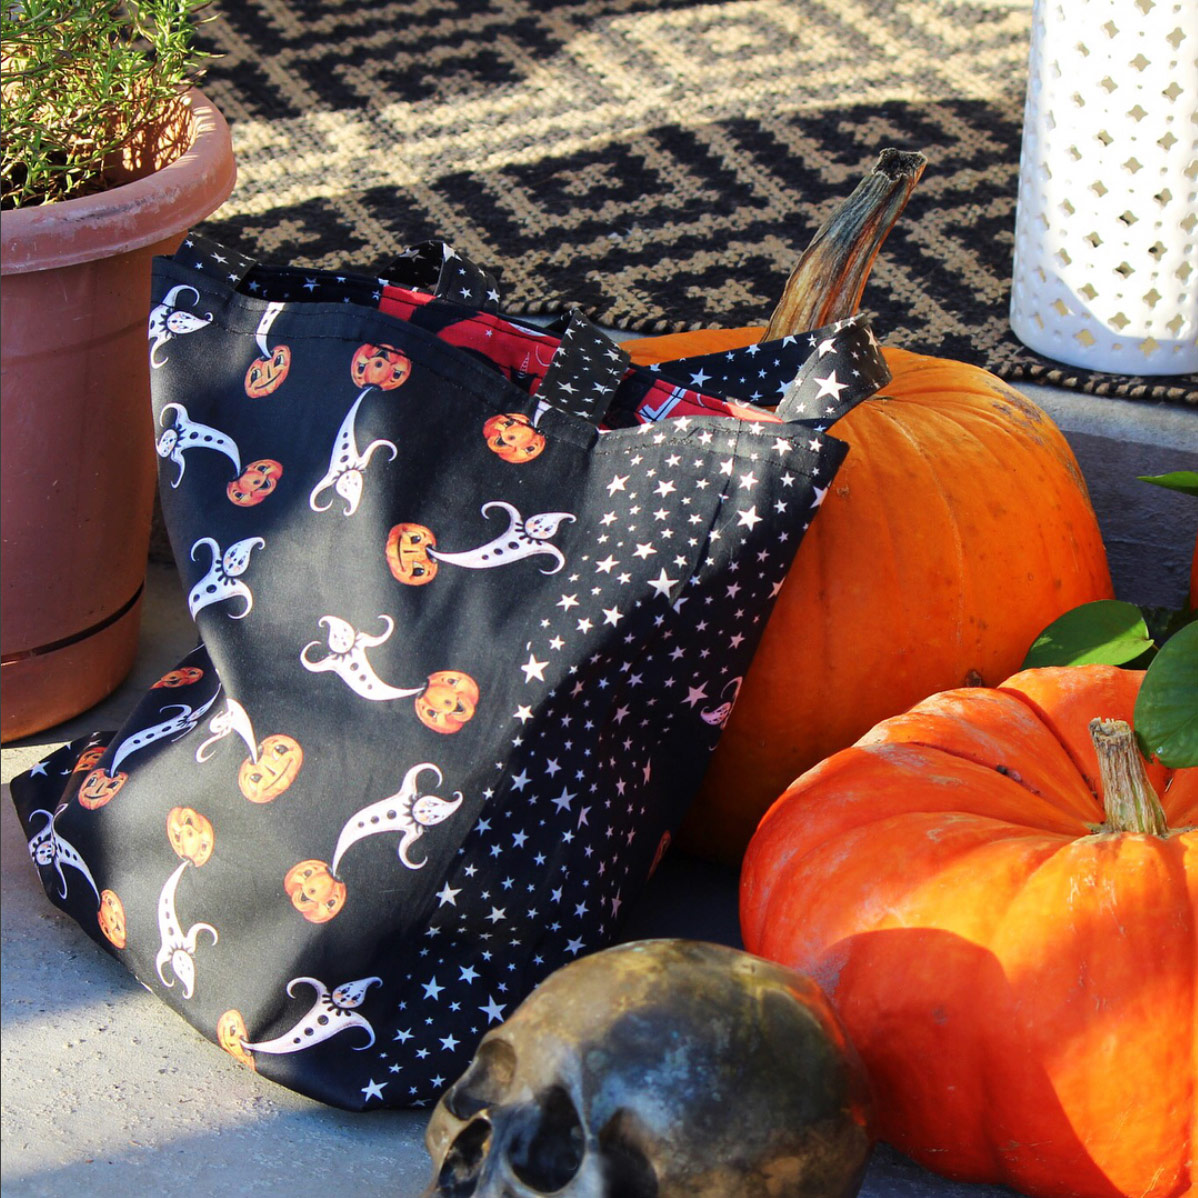 Sprout Pattern Halloween tote bag from @sproutpatterns (on Instagram) using Johanna Parker Halloween fabric from Spoonflower. Get the  Pattern HERE!